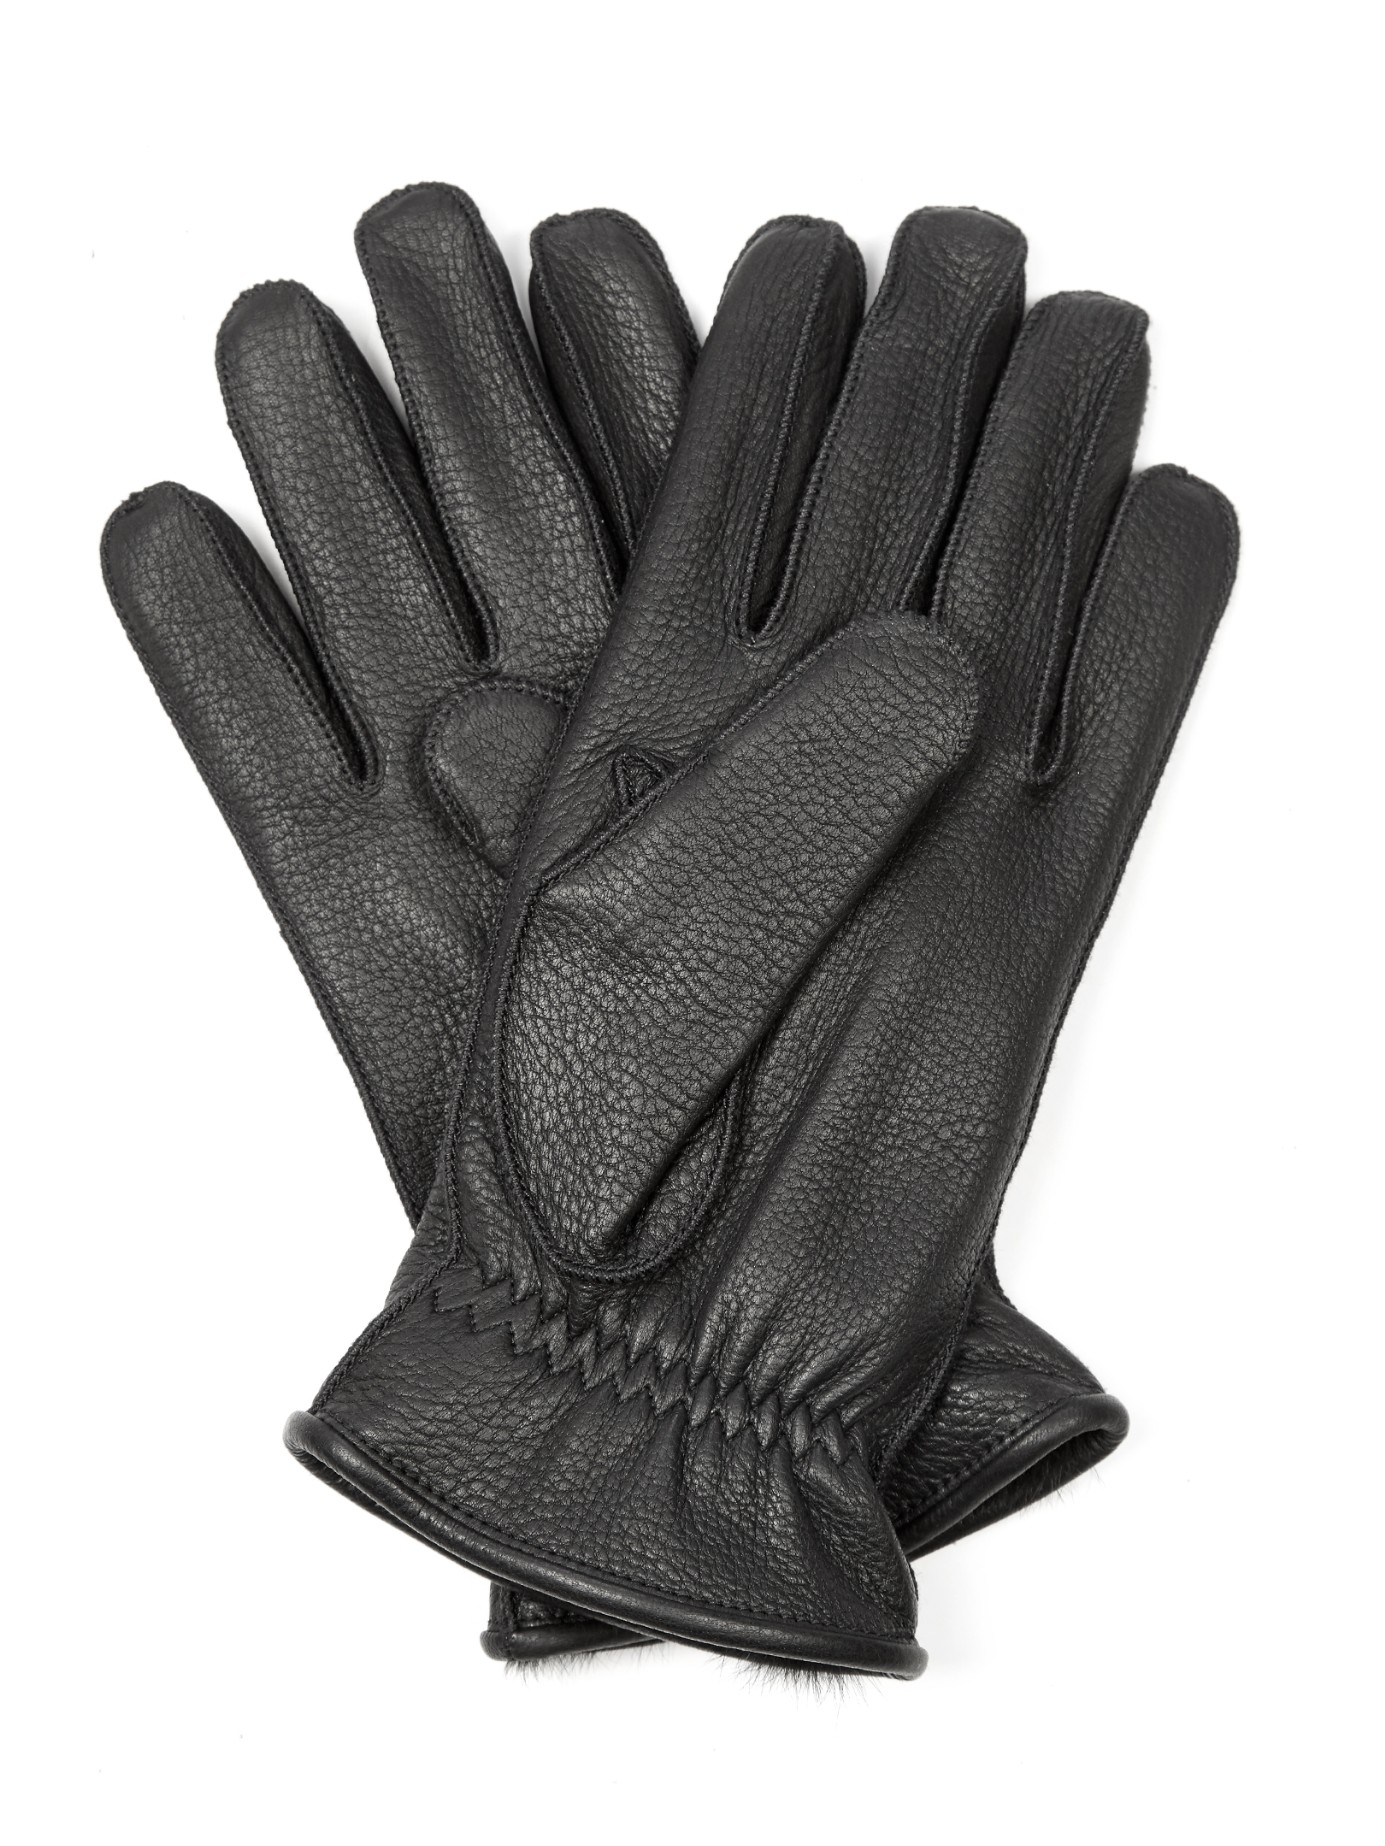 Mens leather gloves rabbit fur lined - Gallery Previously Sold At Matchesfashion Com Men S Leather Gloves